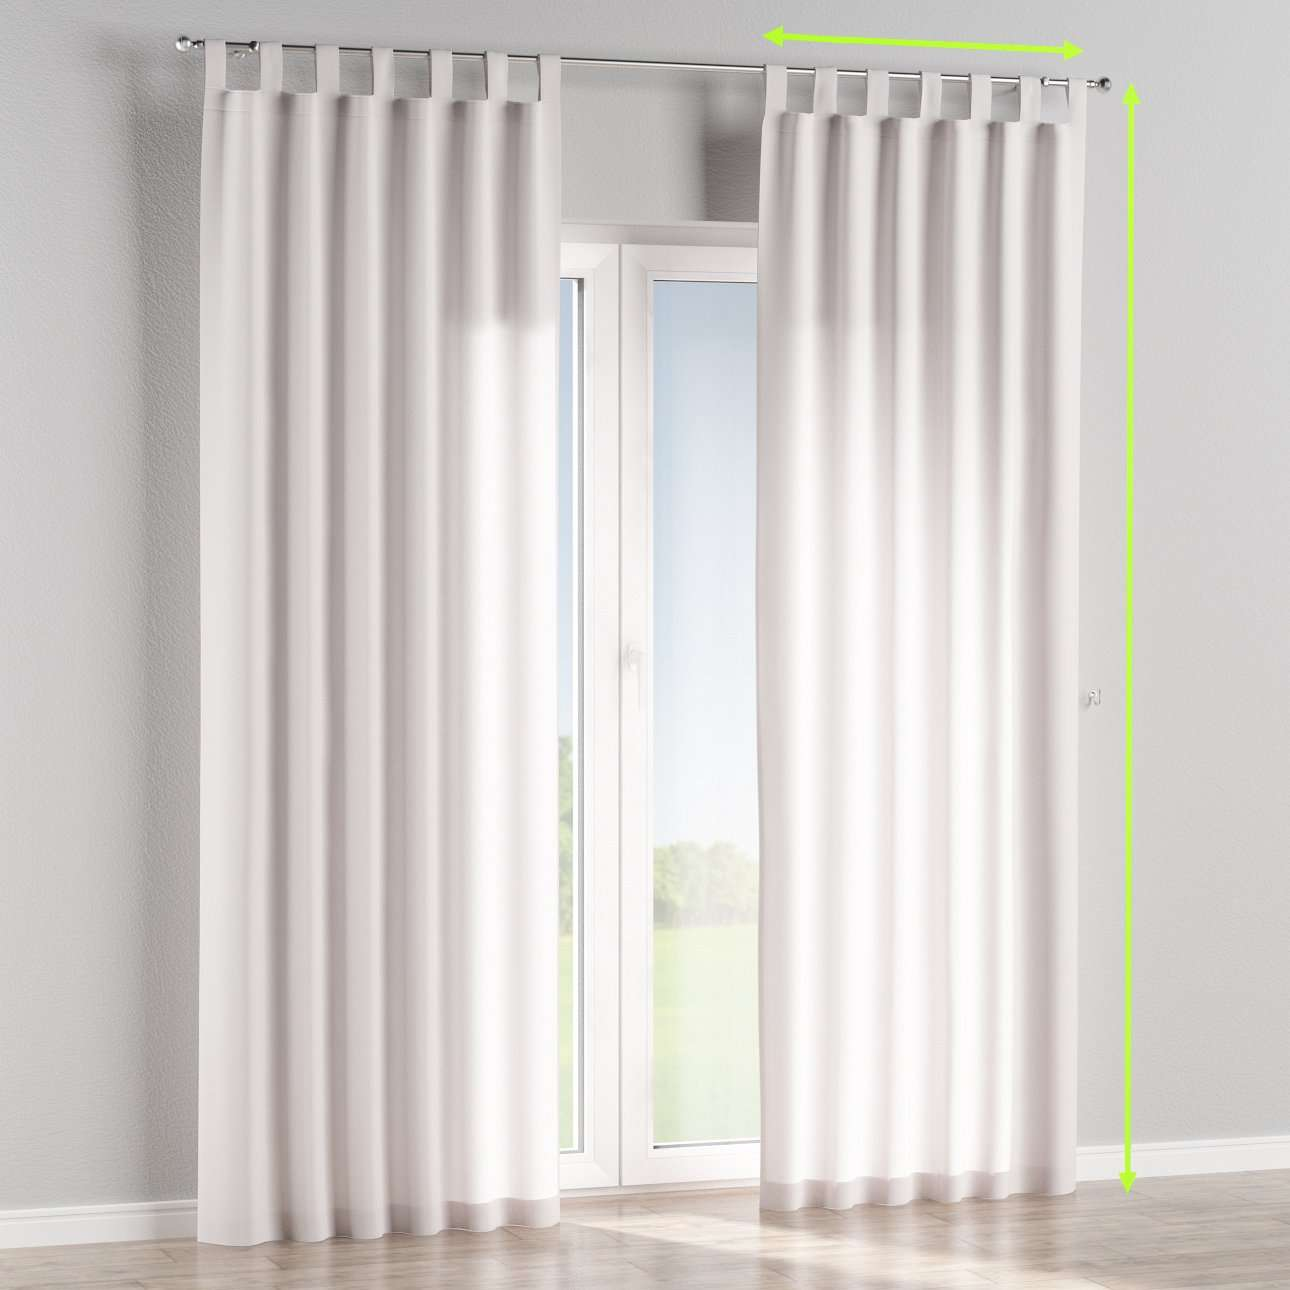 Tab top curtains in collection Cotton Panama, fabric: 702-00